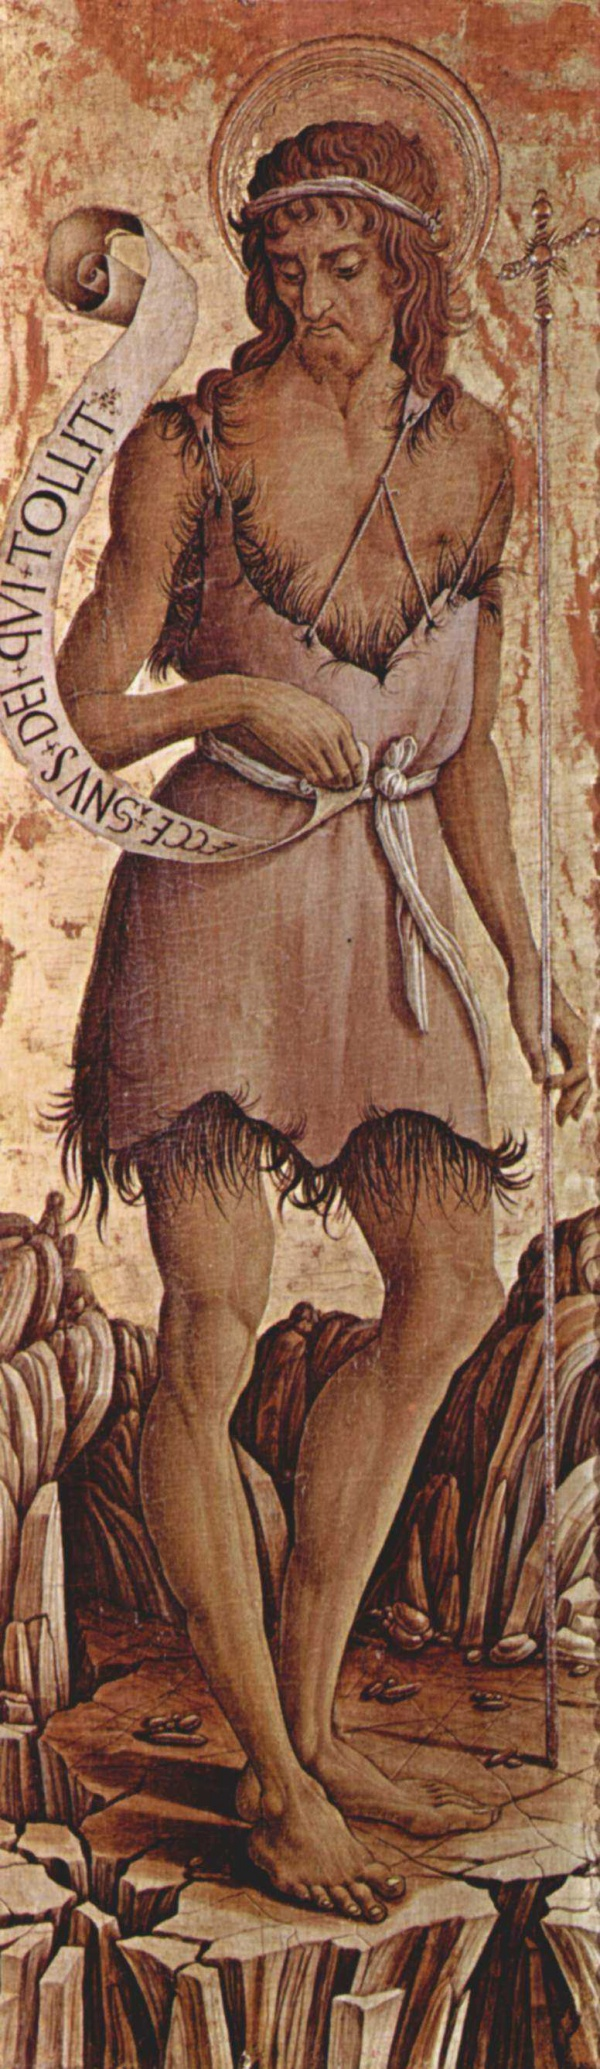 Carlo Crivelli Paintings (1435 - 1495) (Art Painting) (95 фото)